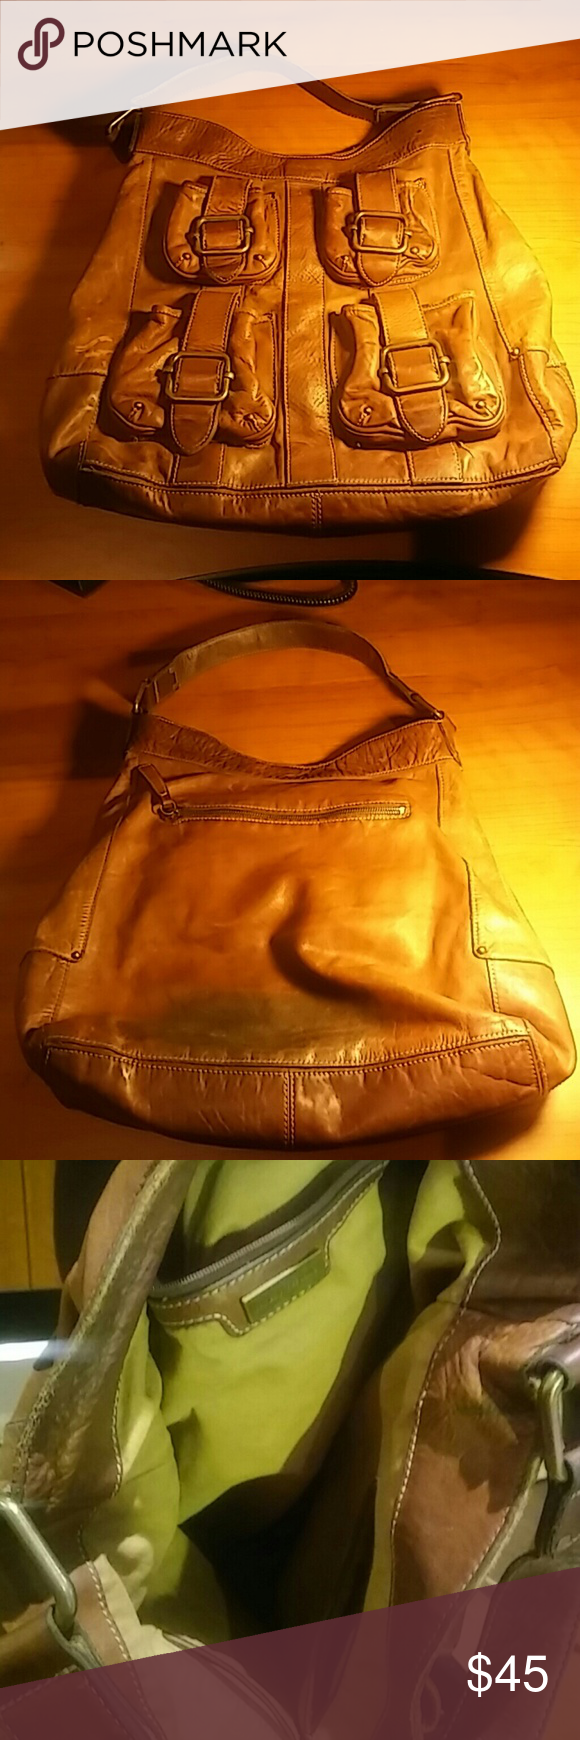 Brown leather purse Large Brown leather Distressed Banana Republic Shoulder bag 4 Front Pockets with Magnetic closure, zip pockets inside and on the back of the bag. Measurements heught 12 1/2 inches, width 17 inches. Banana Republic Bags Shoulder Bags